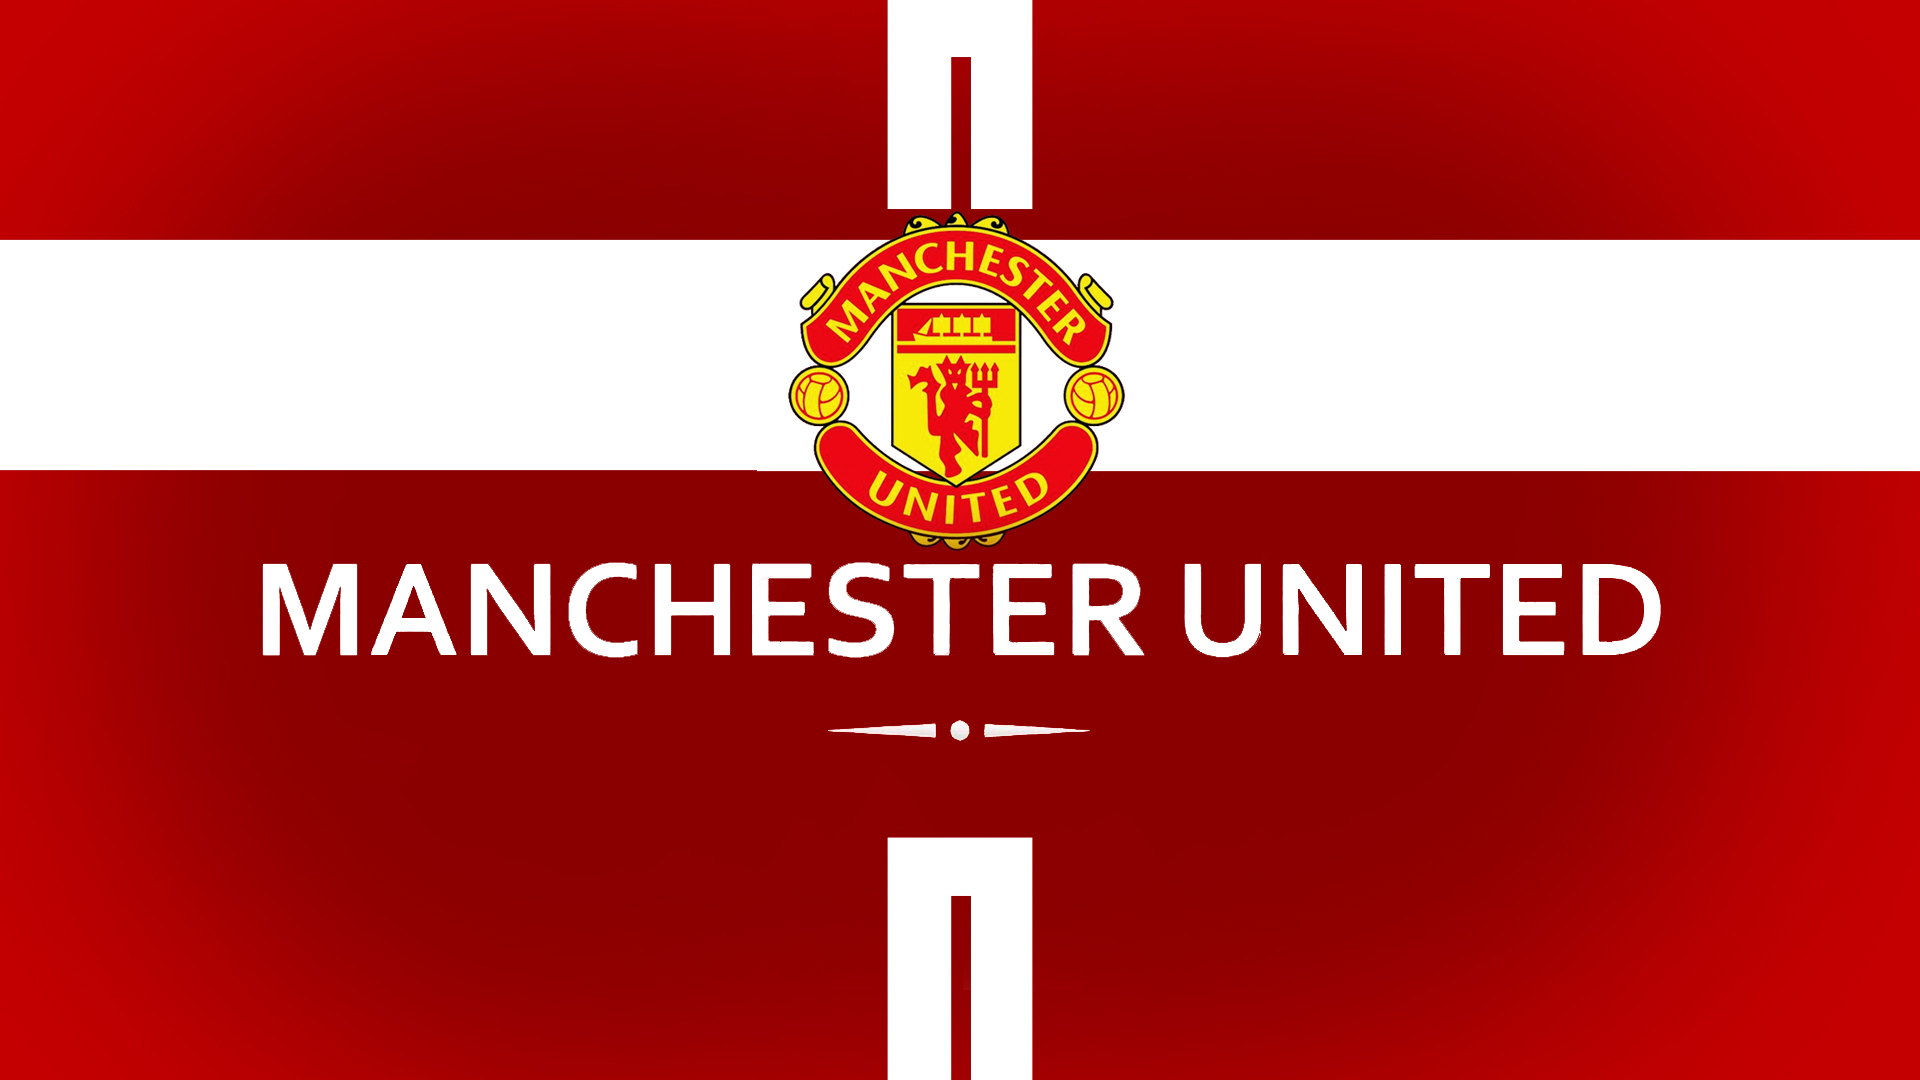 You can download Manchester united 2015 wallpaper in your computer by 1920x1080